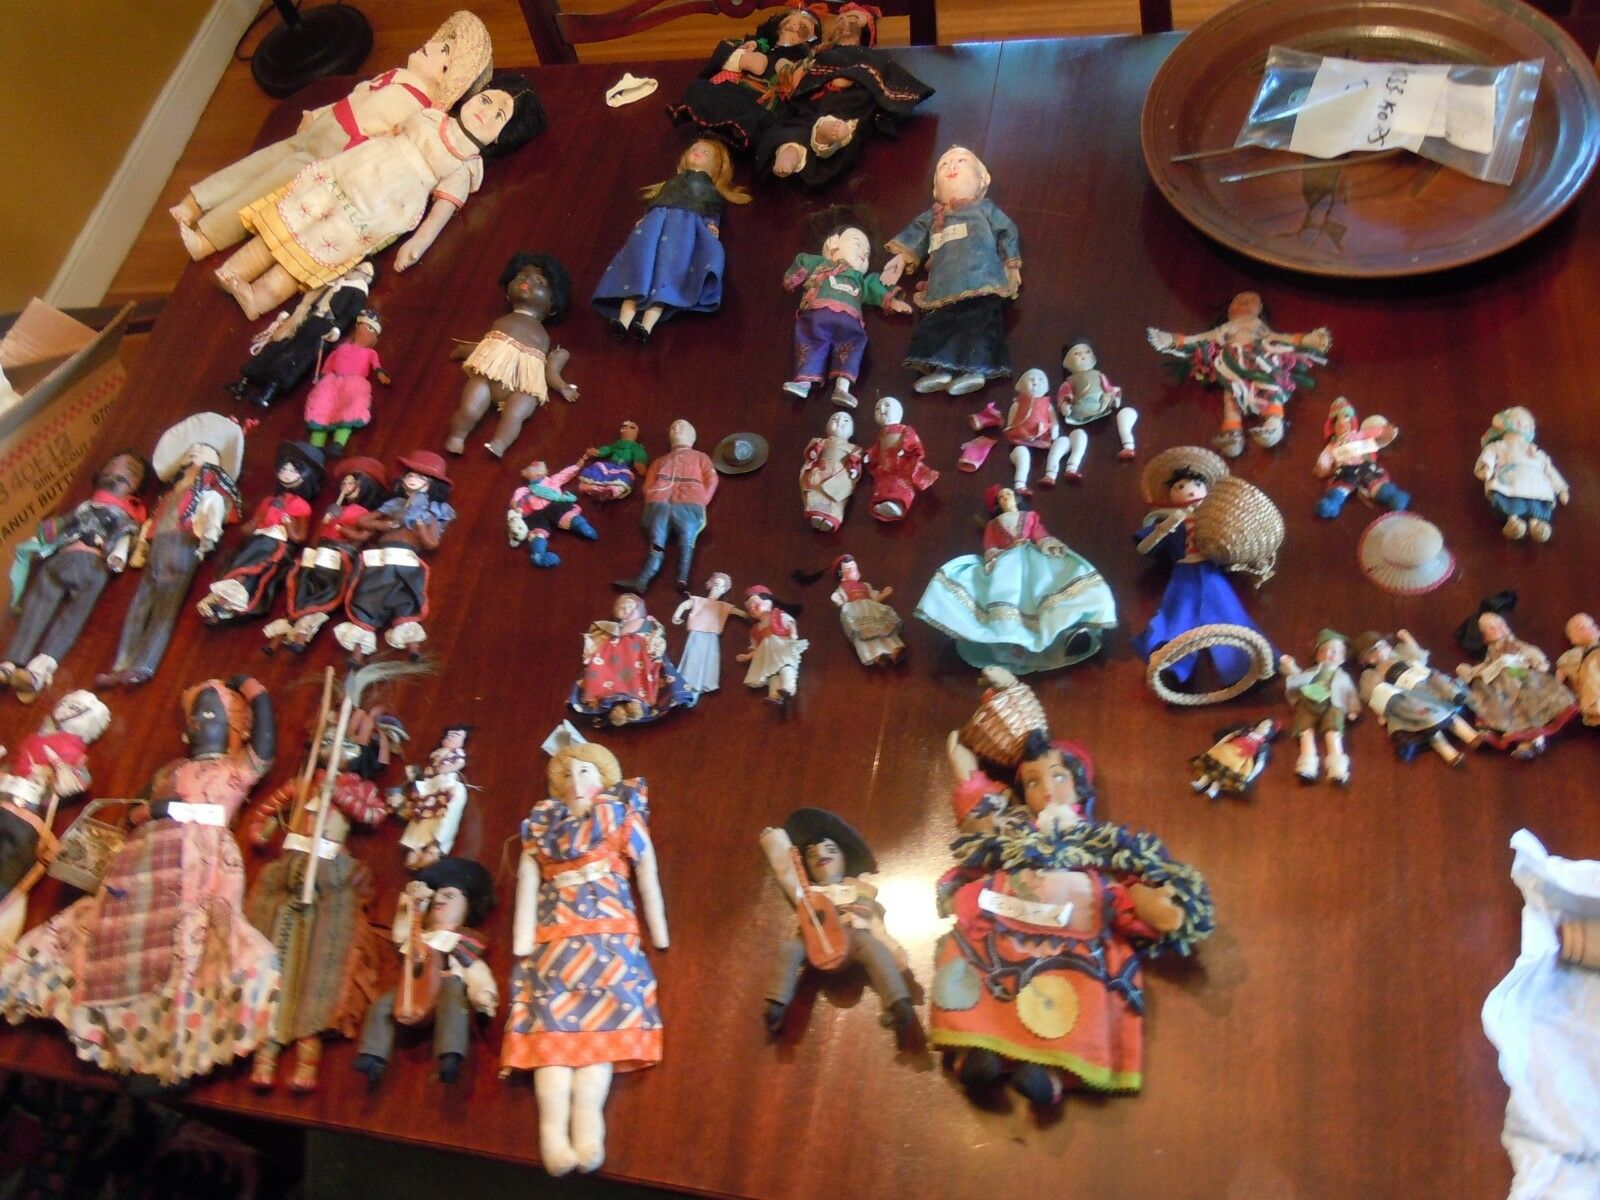 International Antique Doll Collection; Latin America, vintage, tribal, others